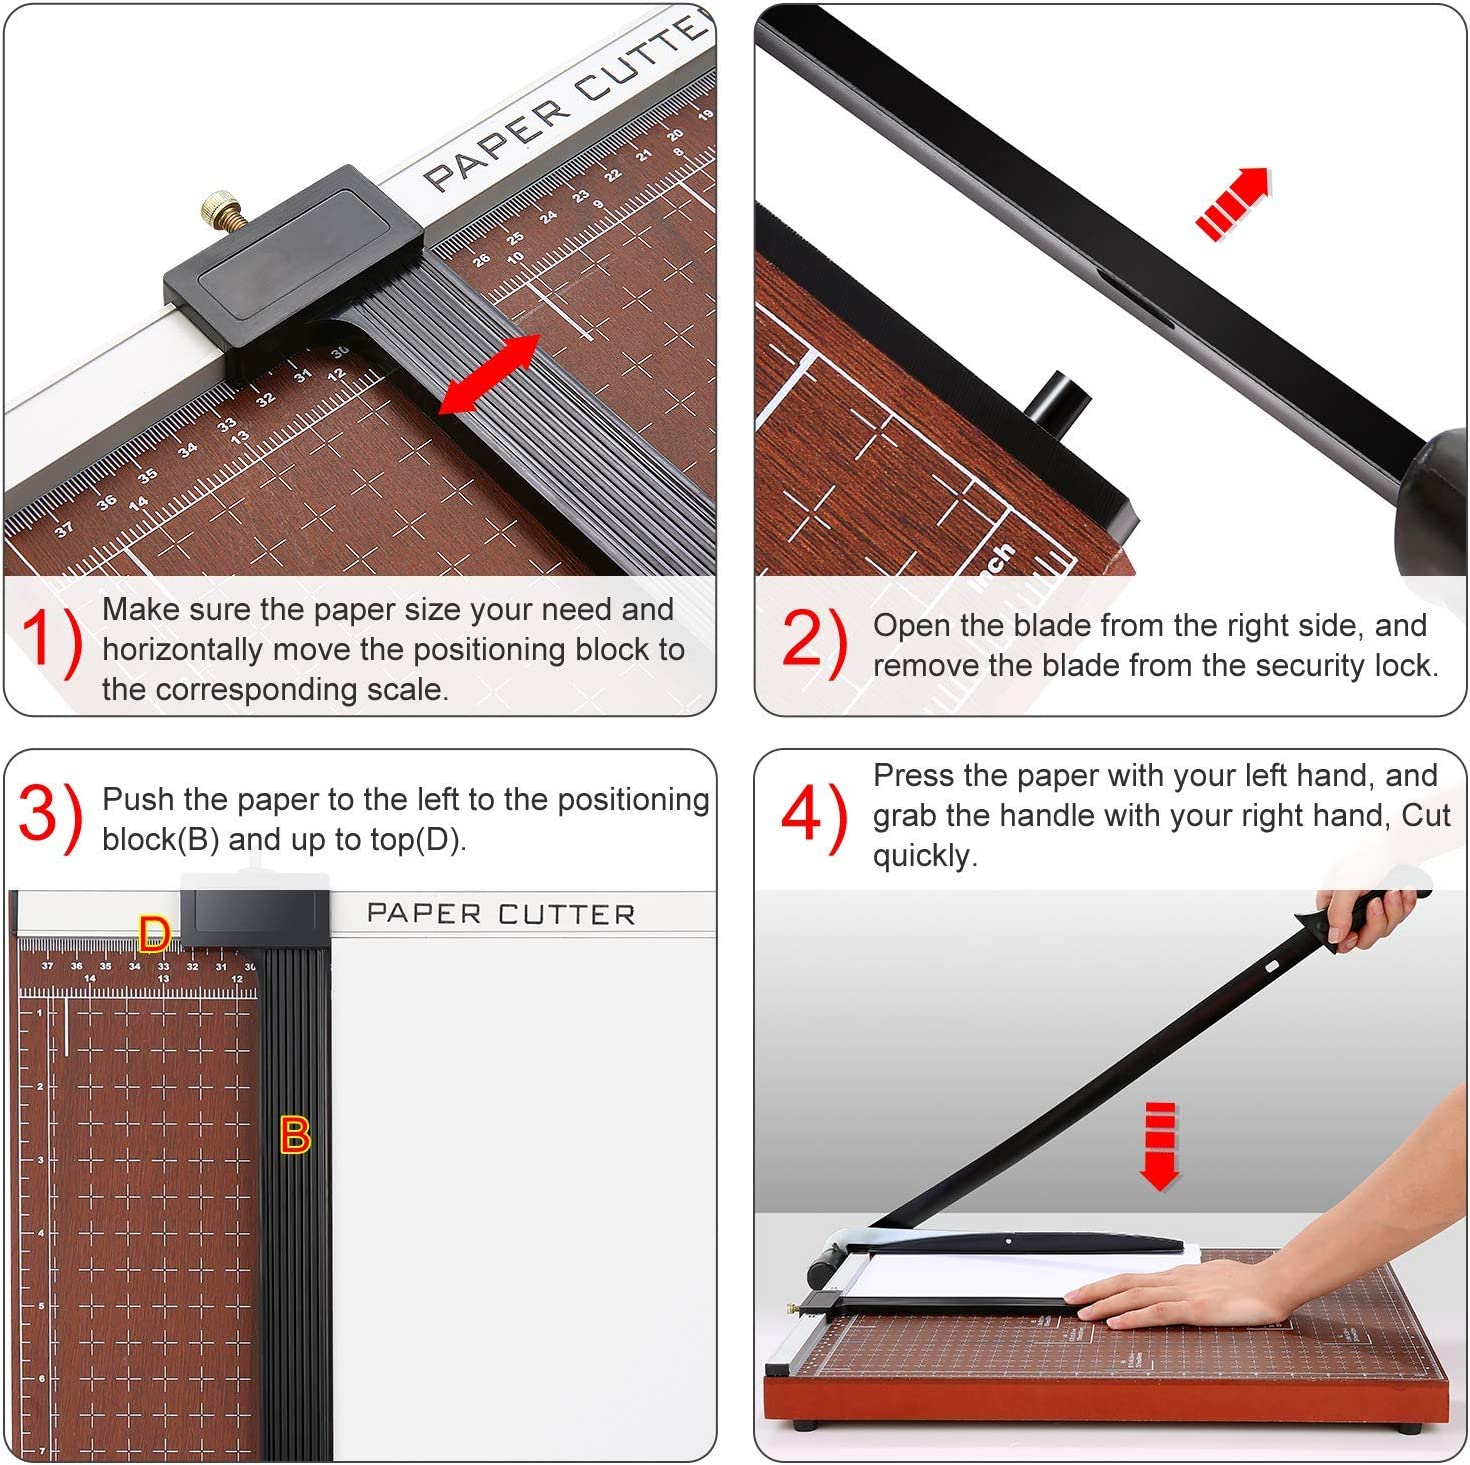 B07QGSDCZD Paper Trimmer, A2-B7 Guillotine Paper Cutter 18 inch Cut Length Photo Guillotine Craft Machine, 12 Sheets Capacity (A3_Red) 719RwV2raEL